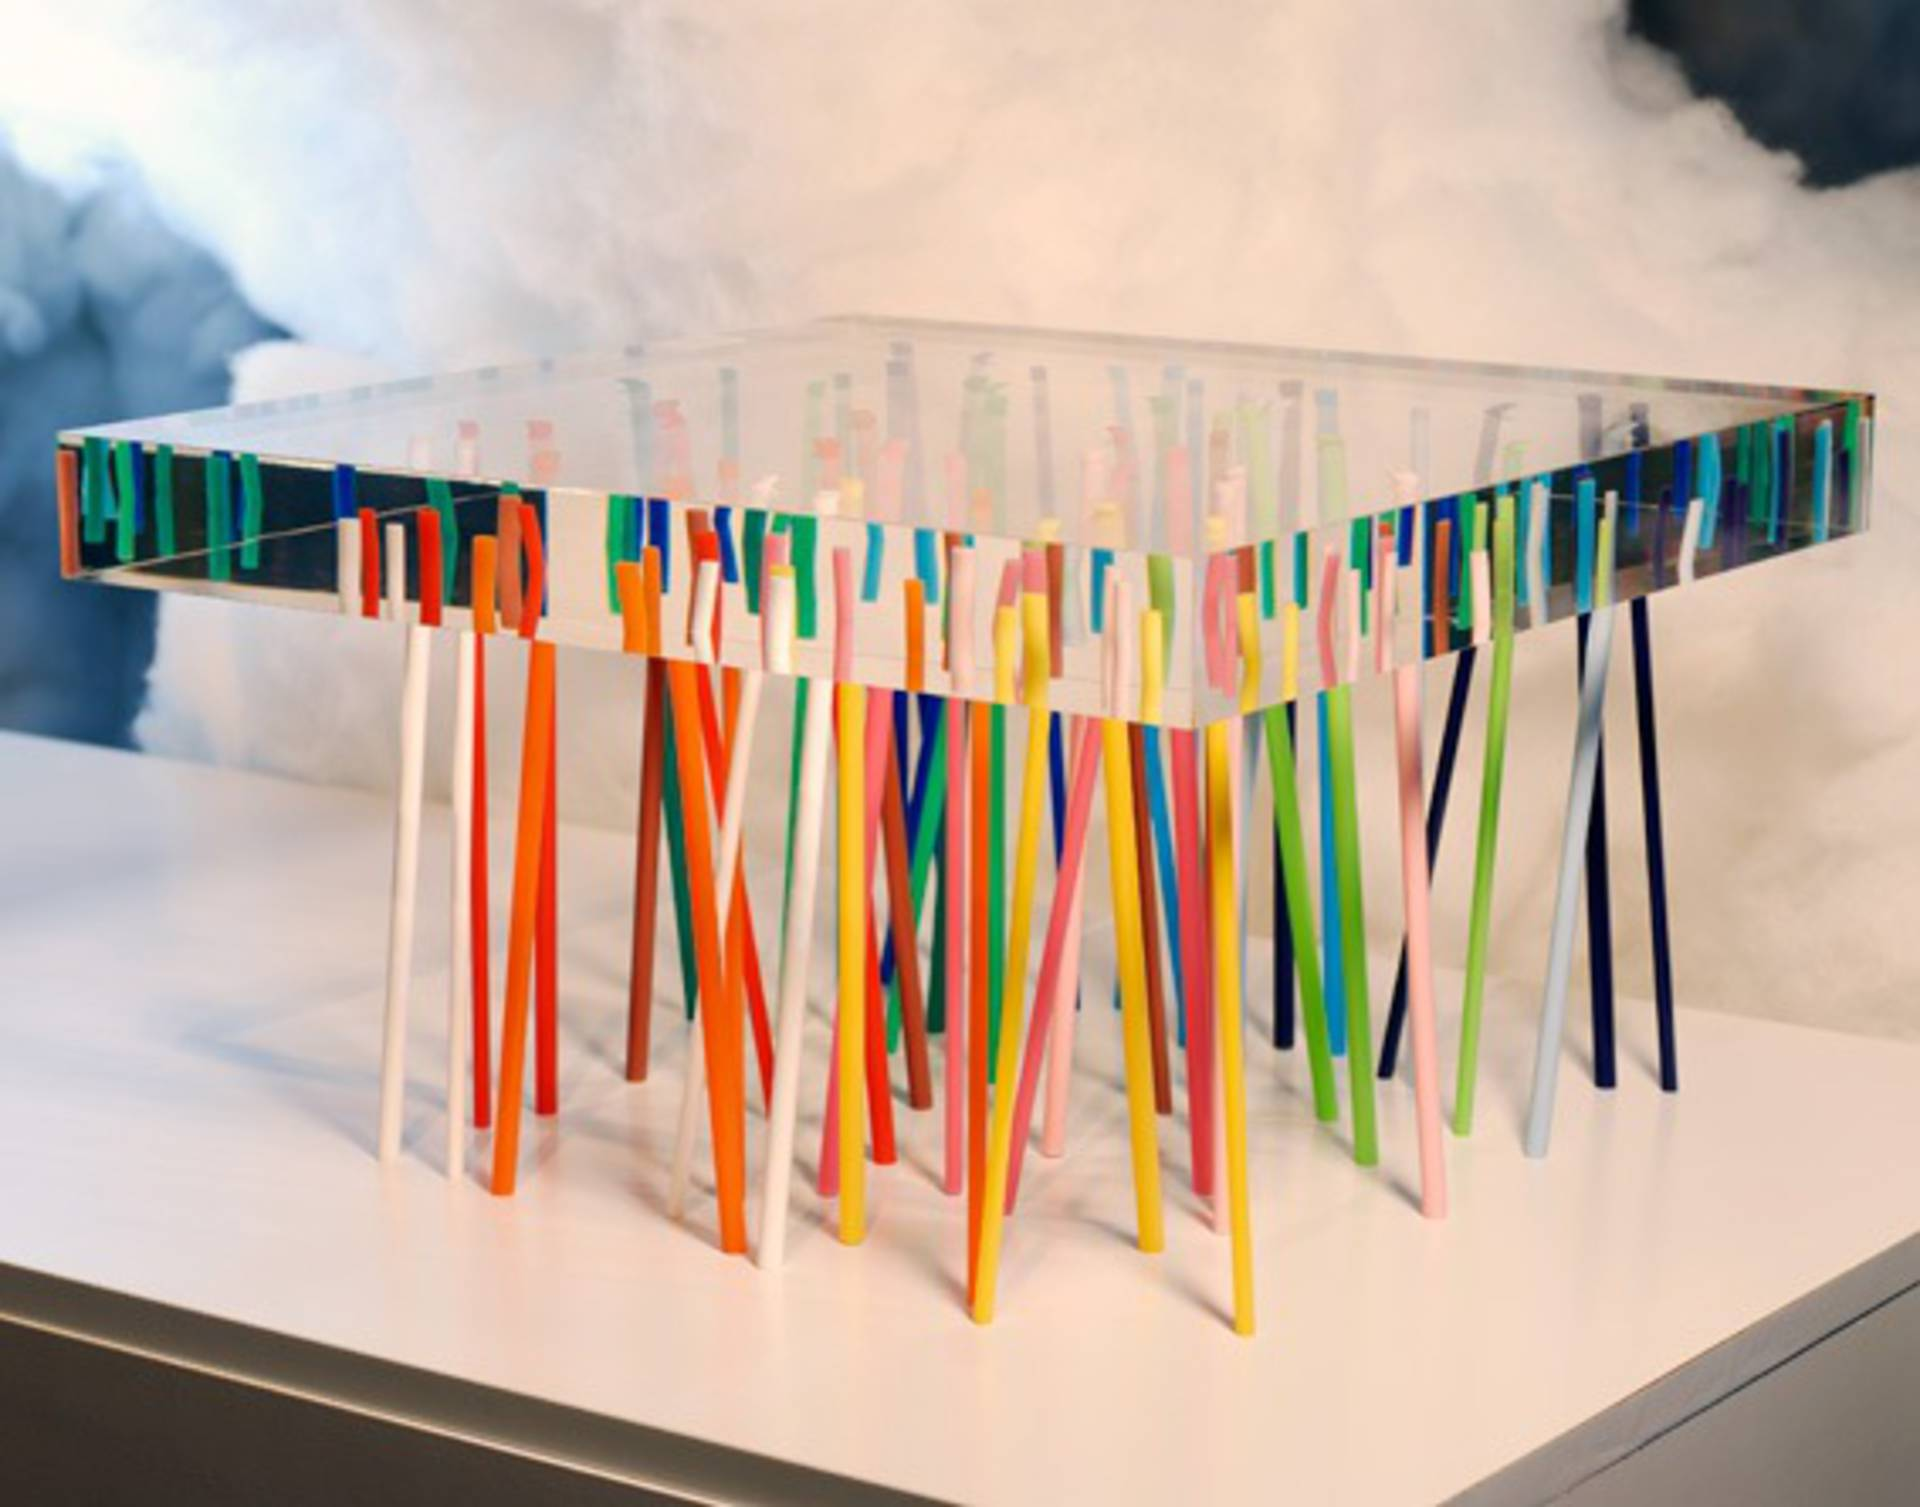 Unusual shibafu table by emmanuelle moureaux architecture and design home reviews - Architecture and design ...